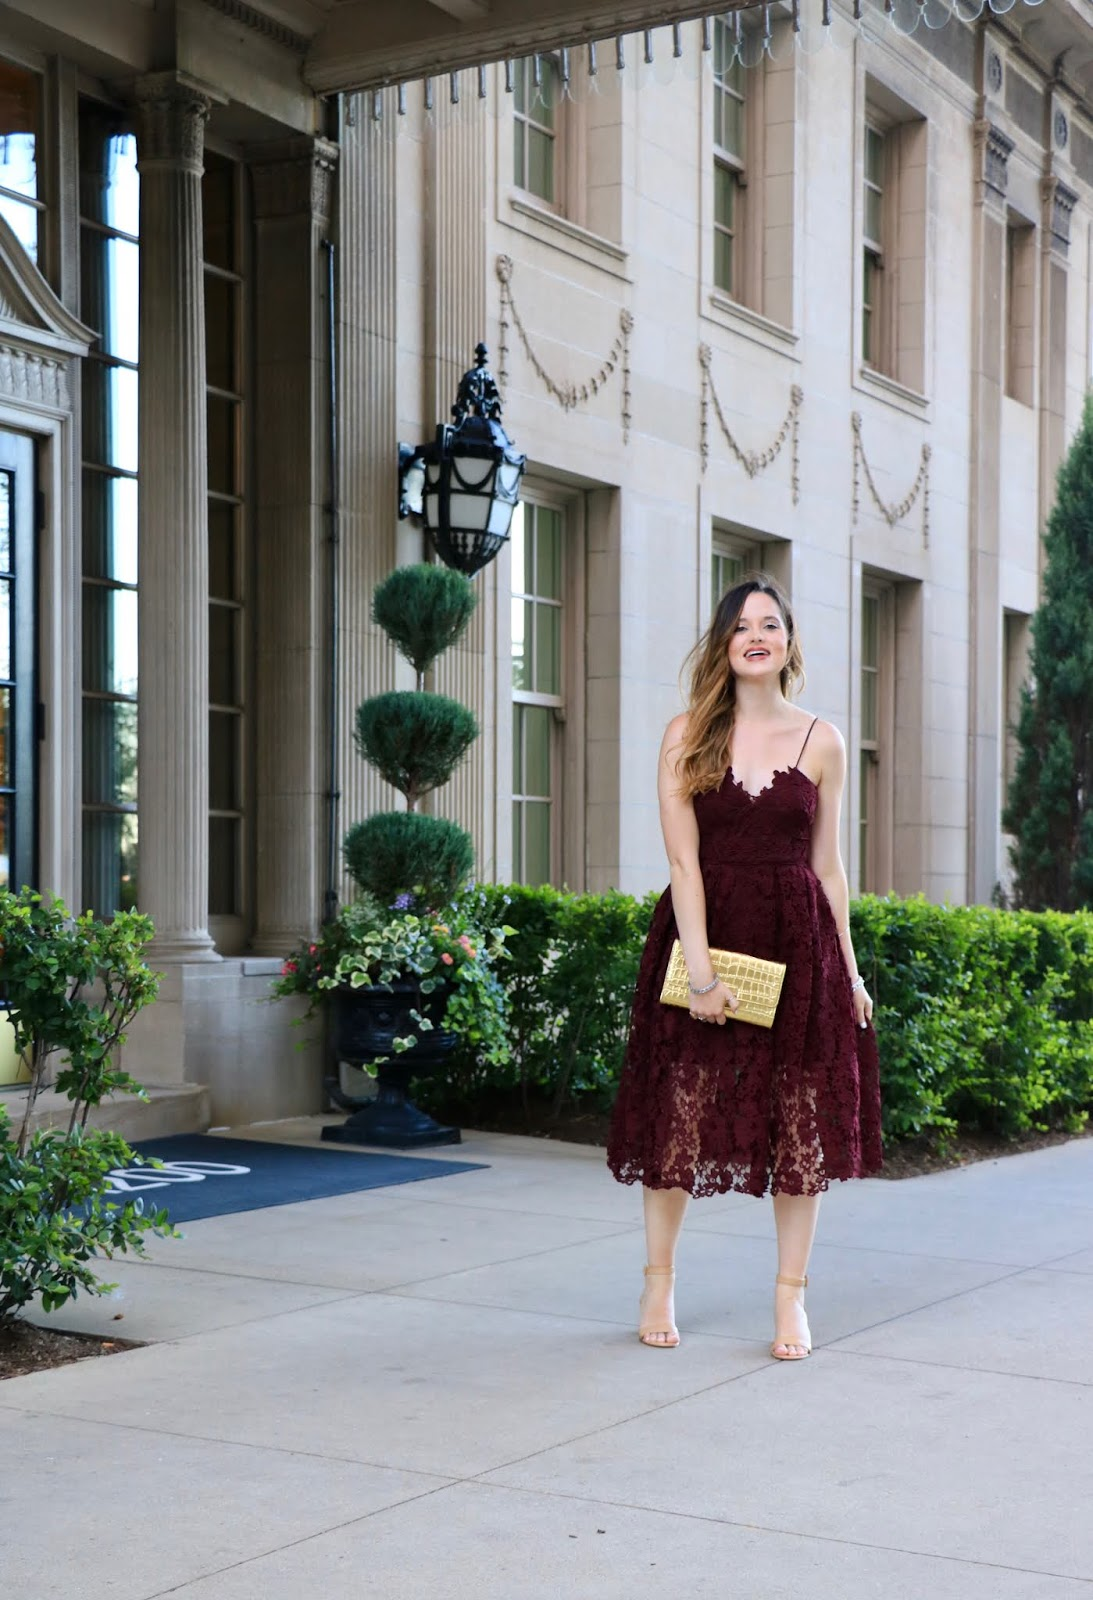 Nyc fashion blogger Kathleen Harper's wedding outfit ideas